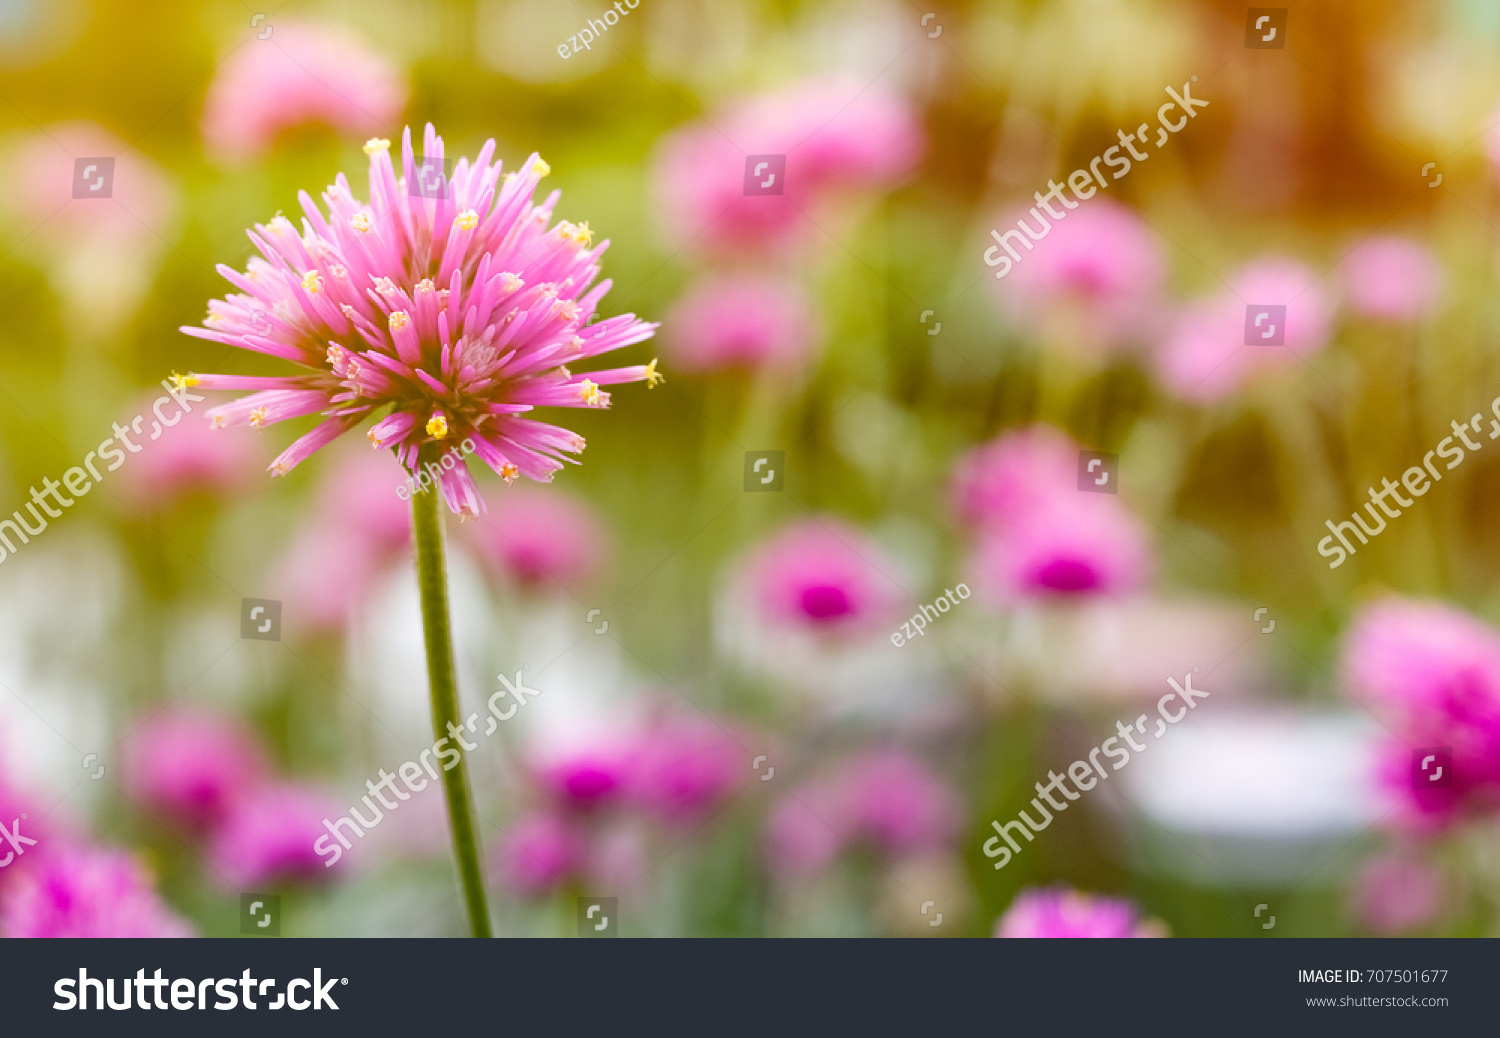 Close Up Of Gomphrena Globosa Or Fireworks Flower A Beautiful Pink